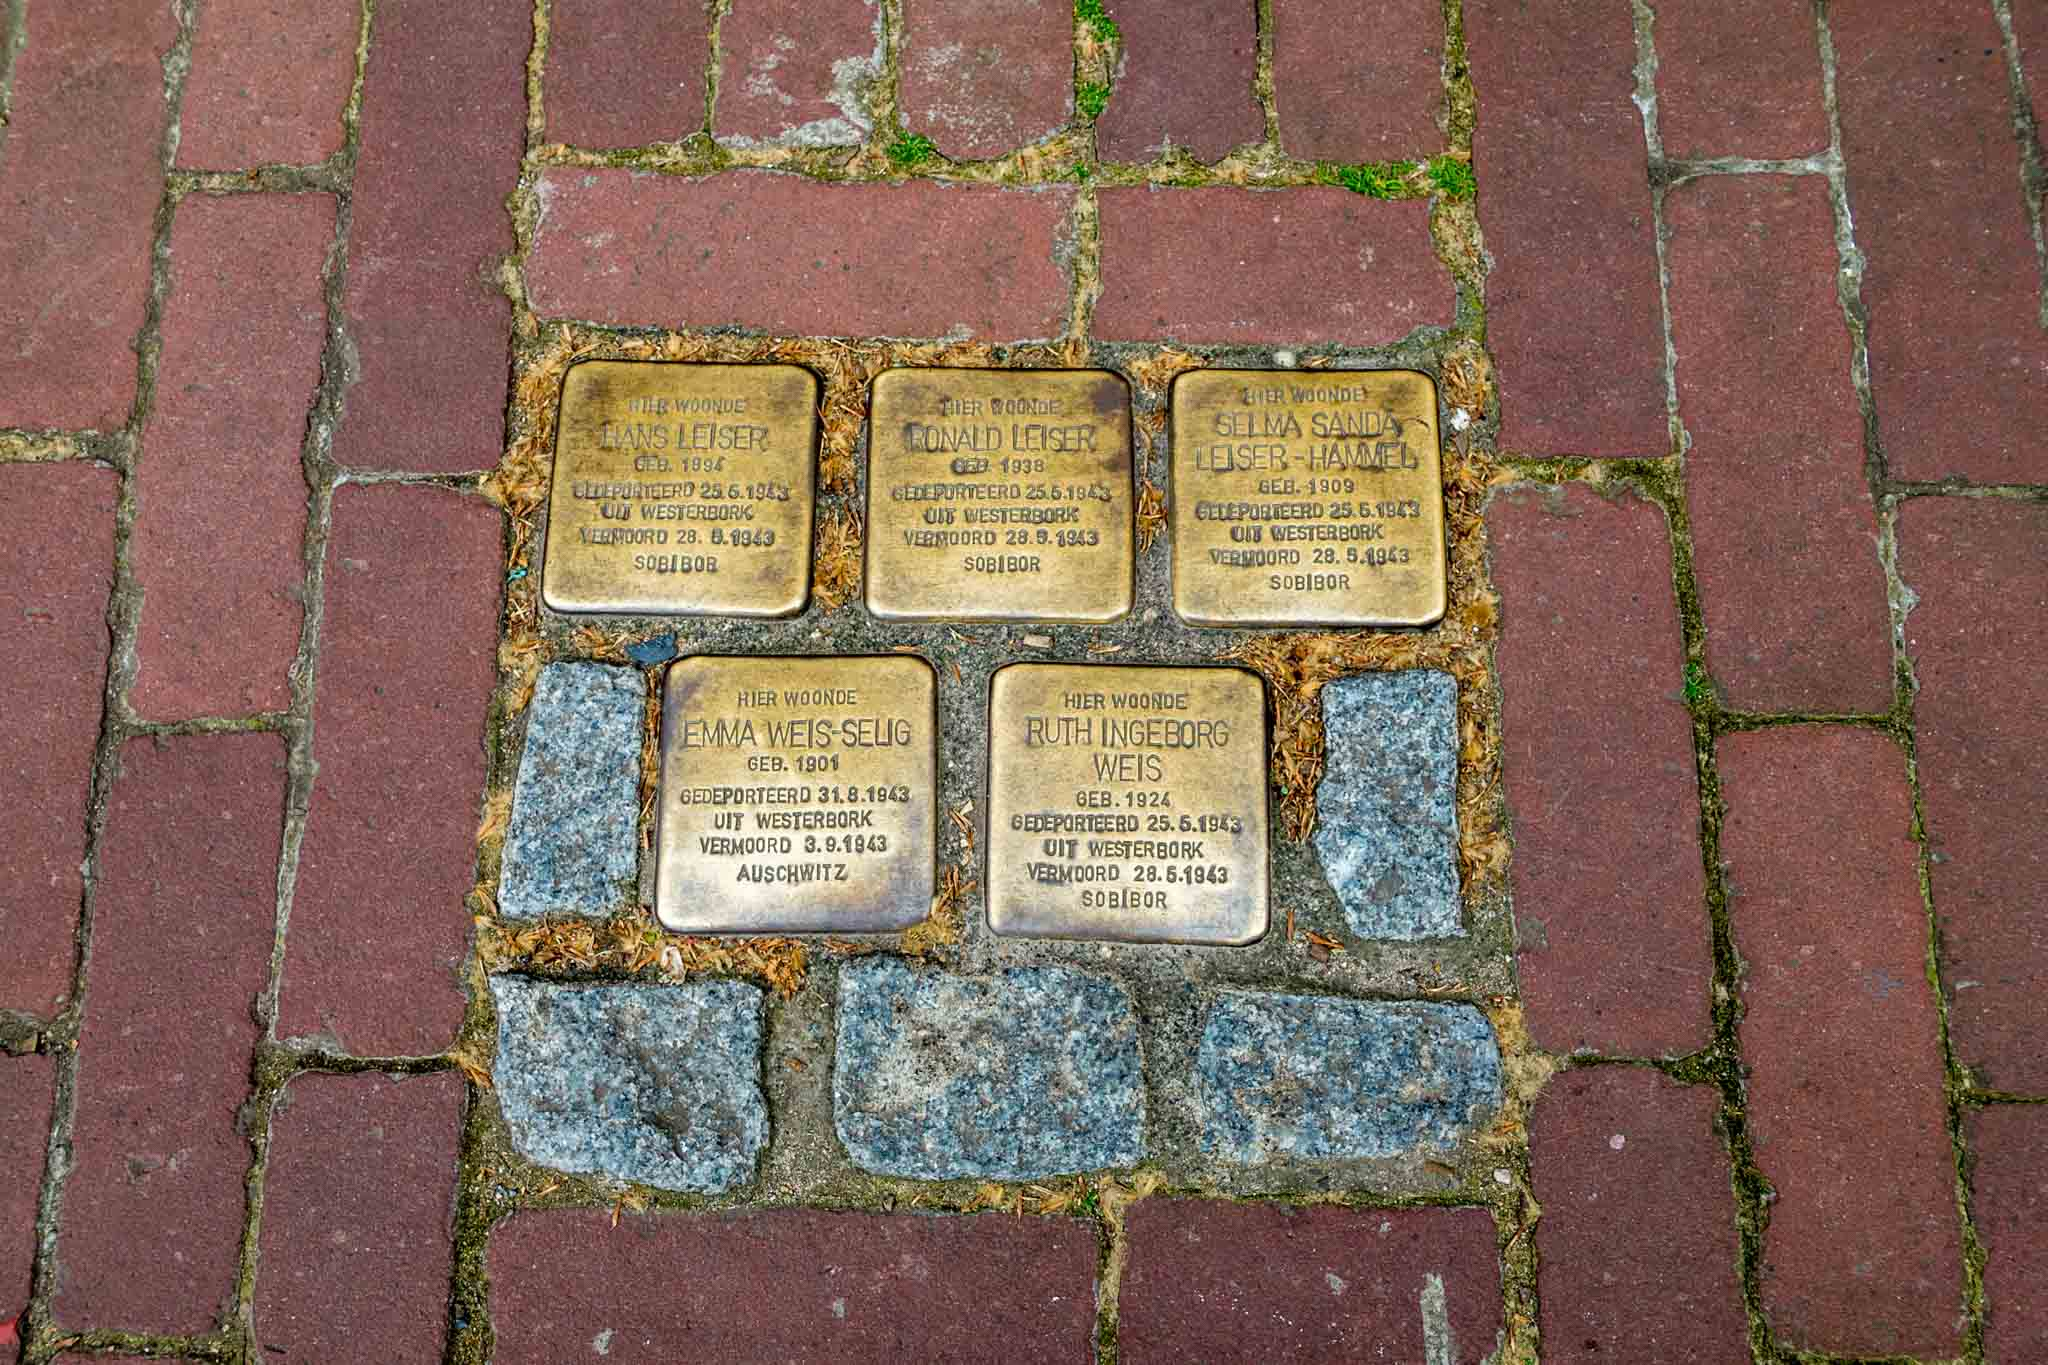 Stolpersteine (stumble stones) are small golden stones embedded in the sidewalk with the biographical details about victims of the Holocaust